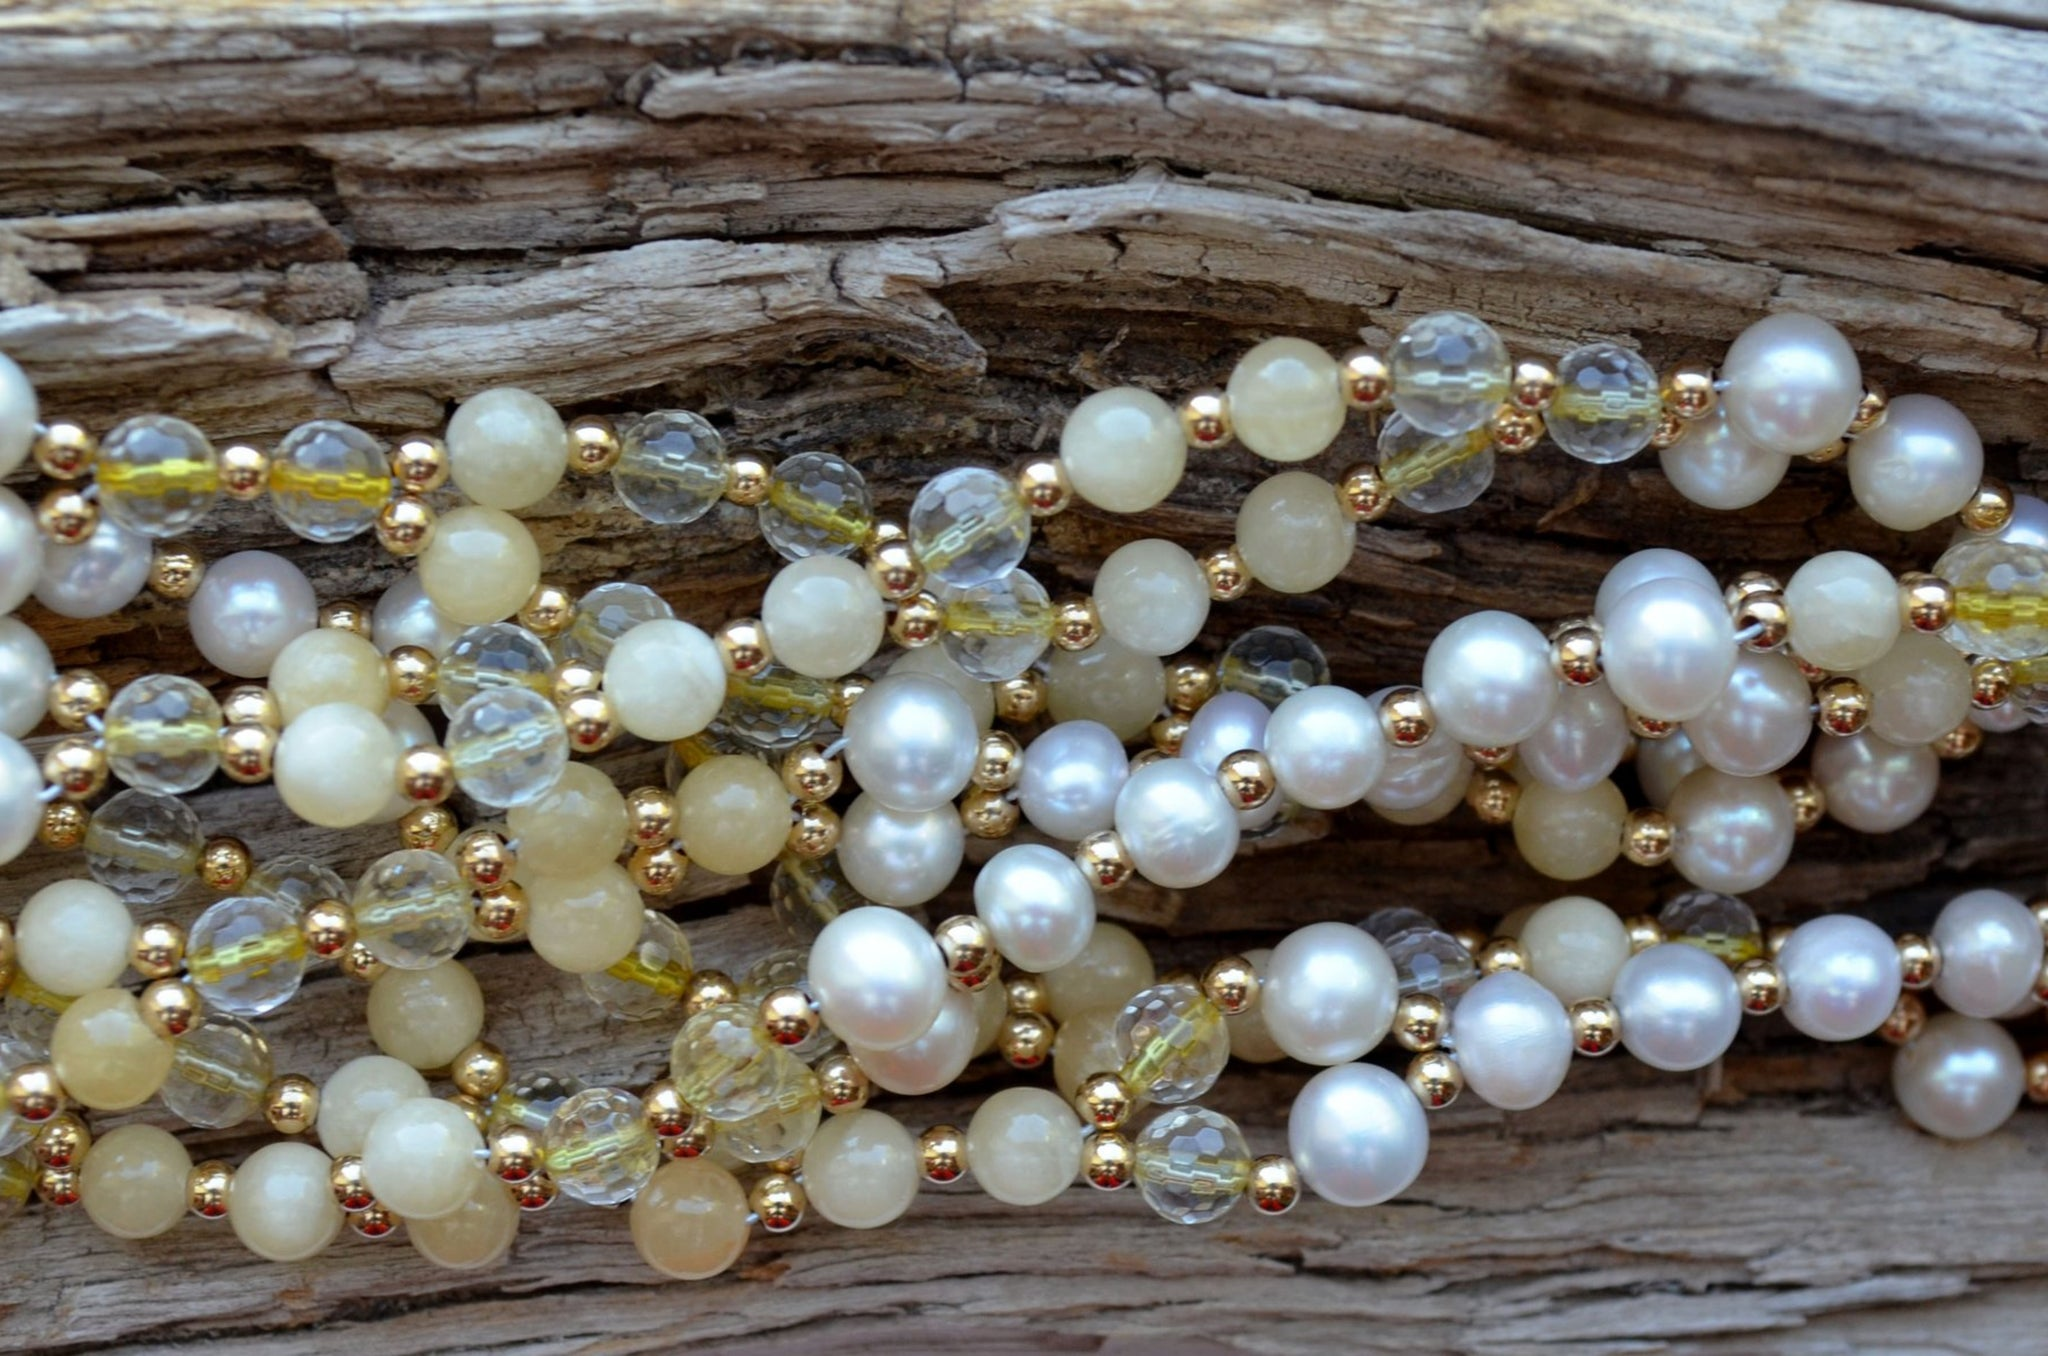 6mm Citrine Faceted, Calcite, Quartz Crystal Faceted, Pearl and Gold-Filled